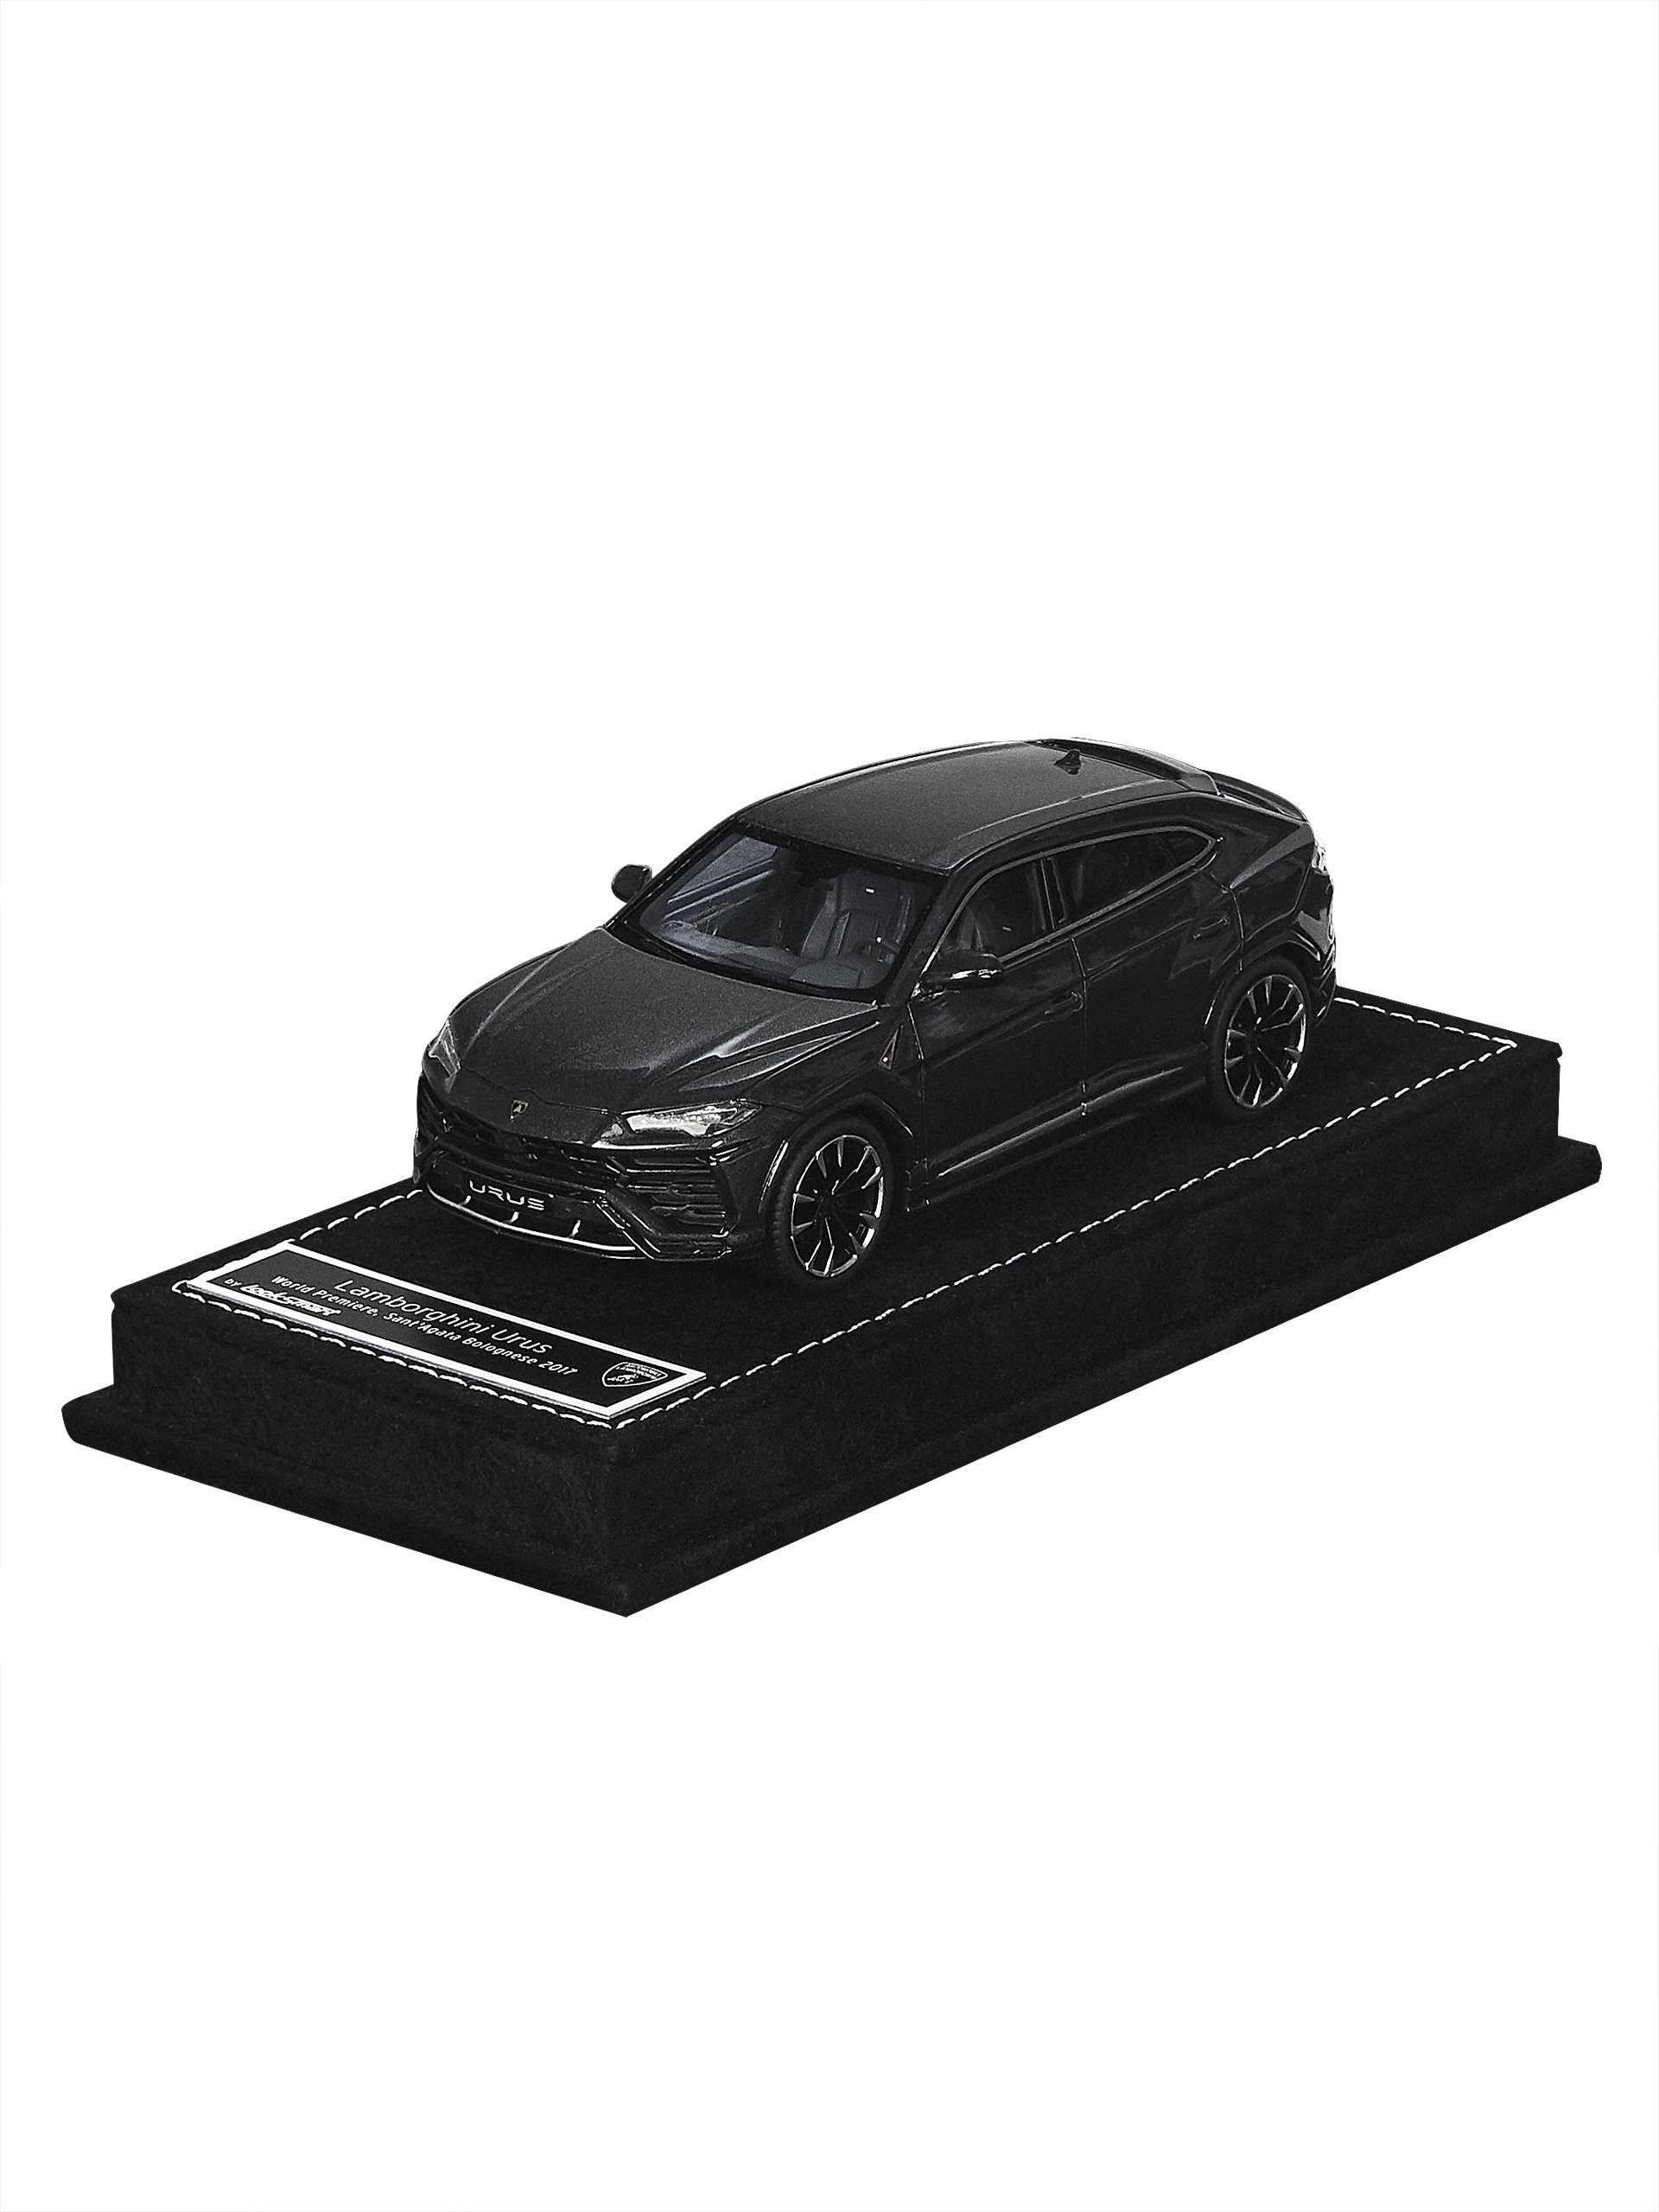 Automobili Lamborghini Urus 1:43 scale model by Looksmart